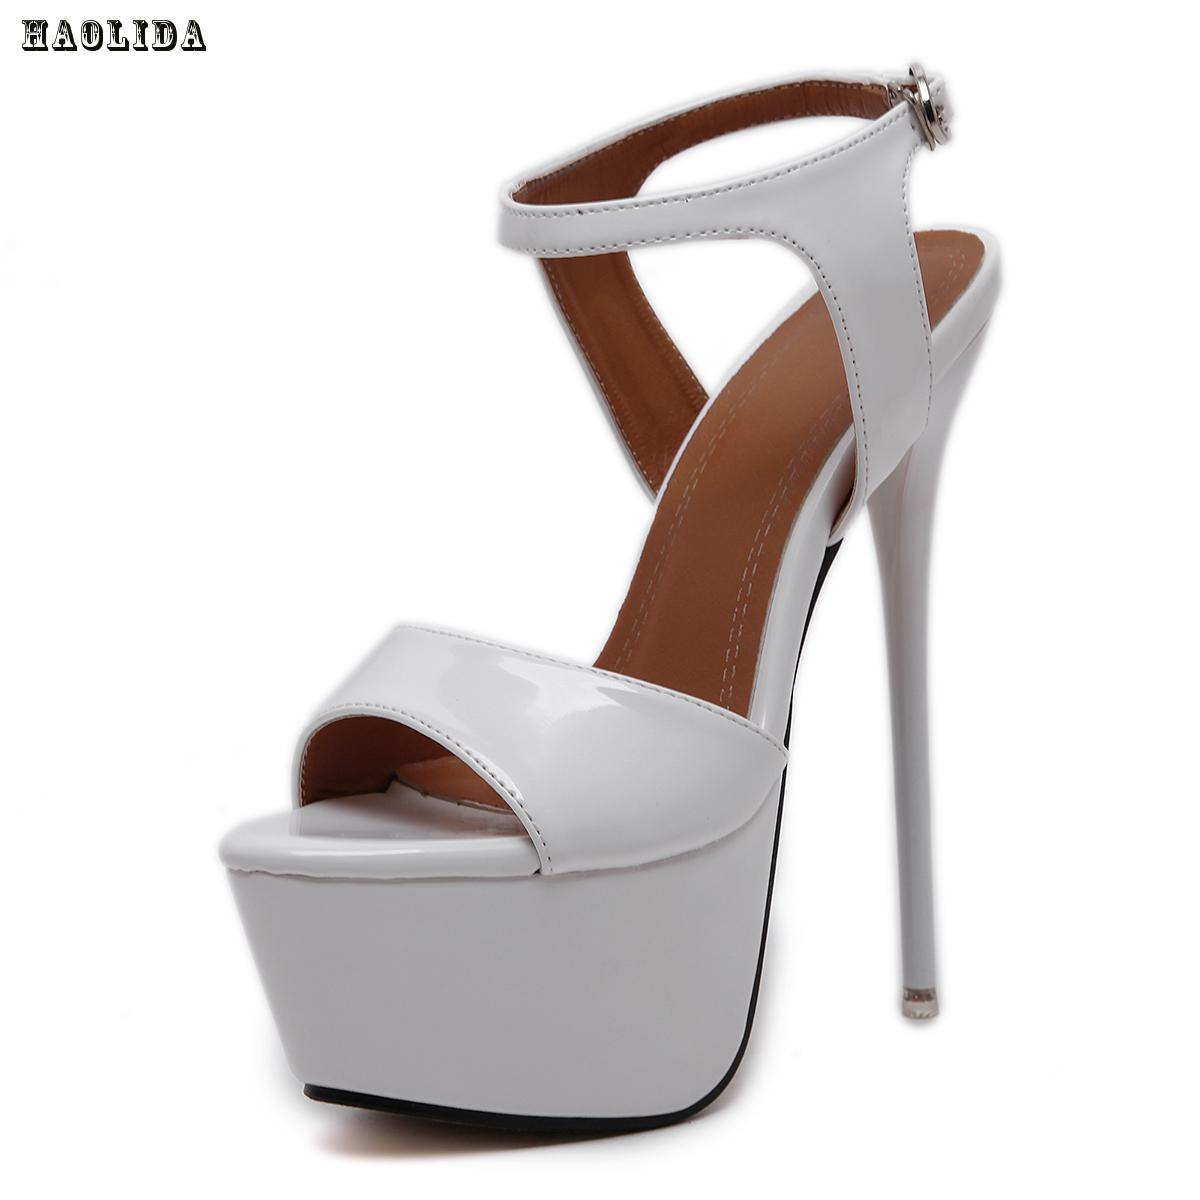 New 2017 Fashion Peep Toe High-heeled Sandals Sexy Open Toe 16CM High Heels Sandals Party Dress Women Shoes<br>